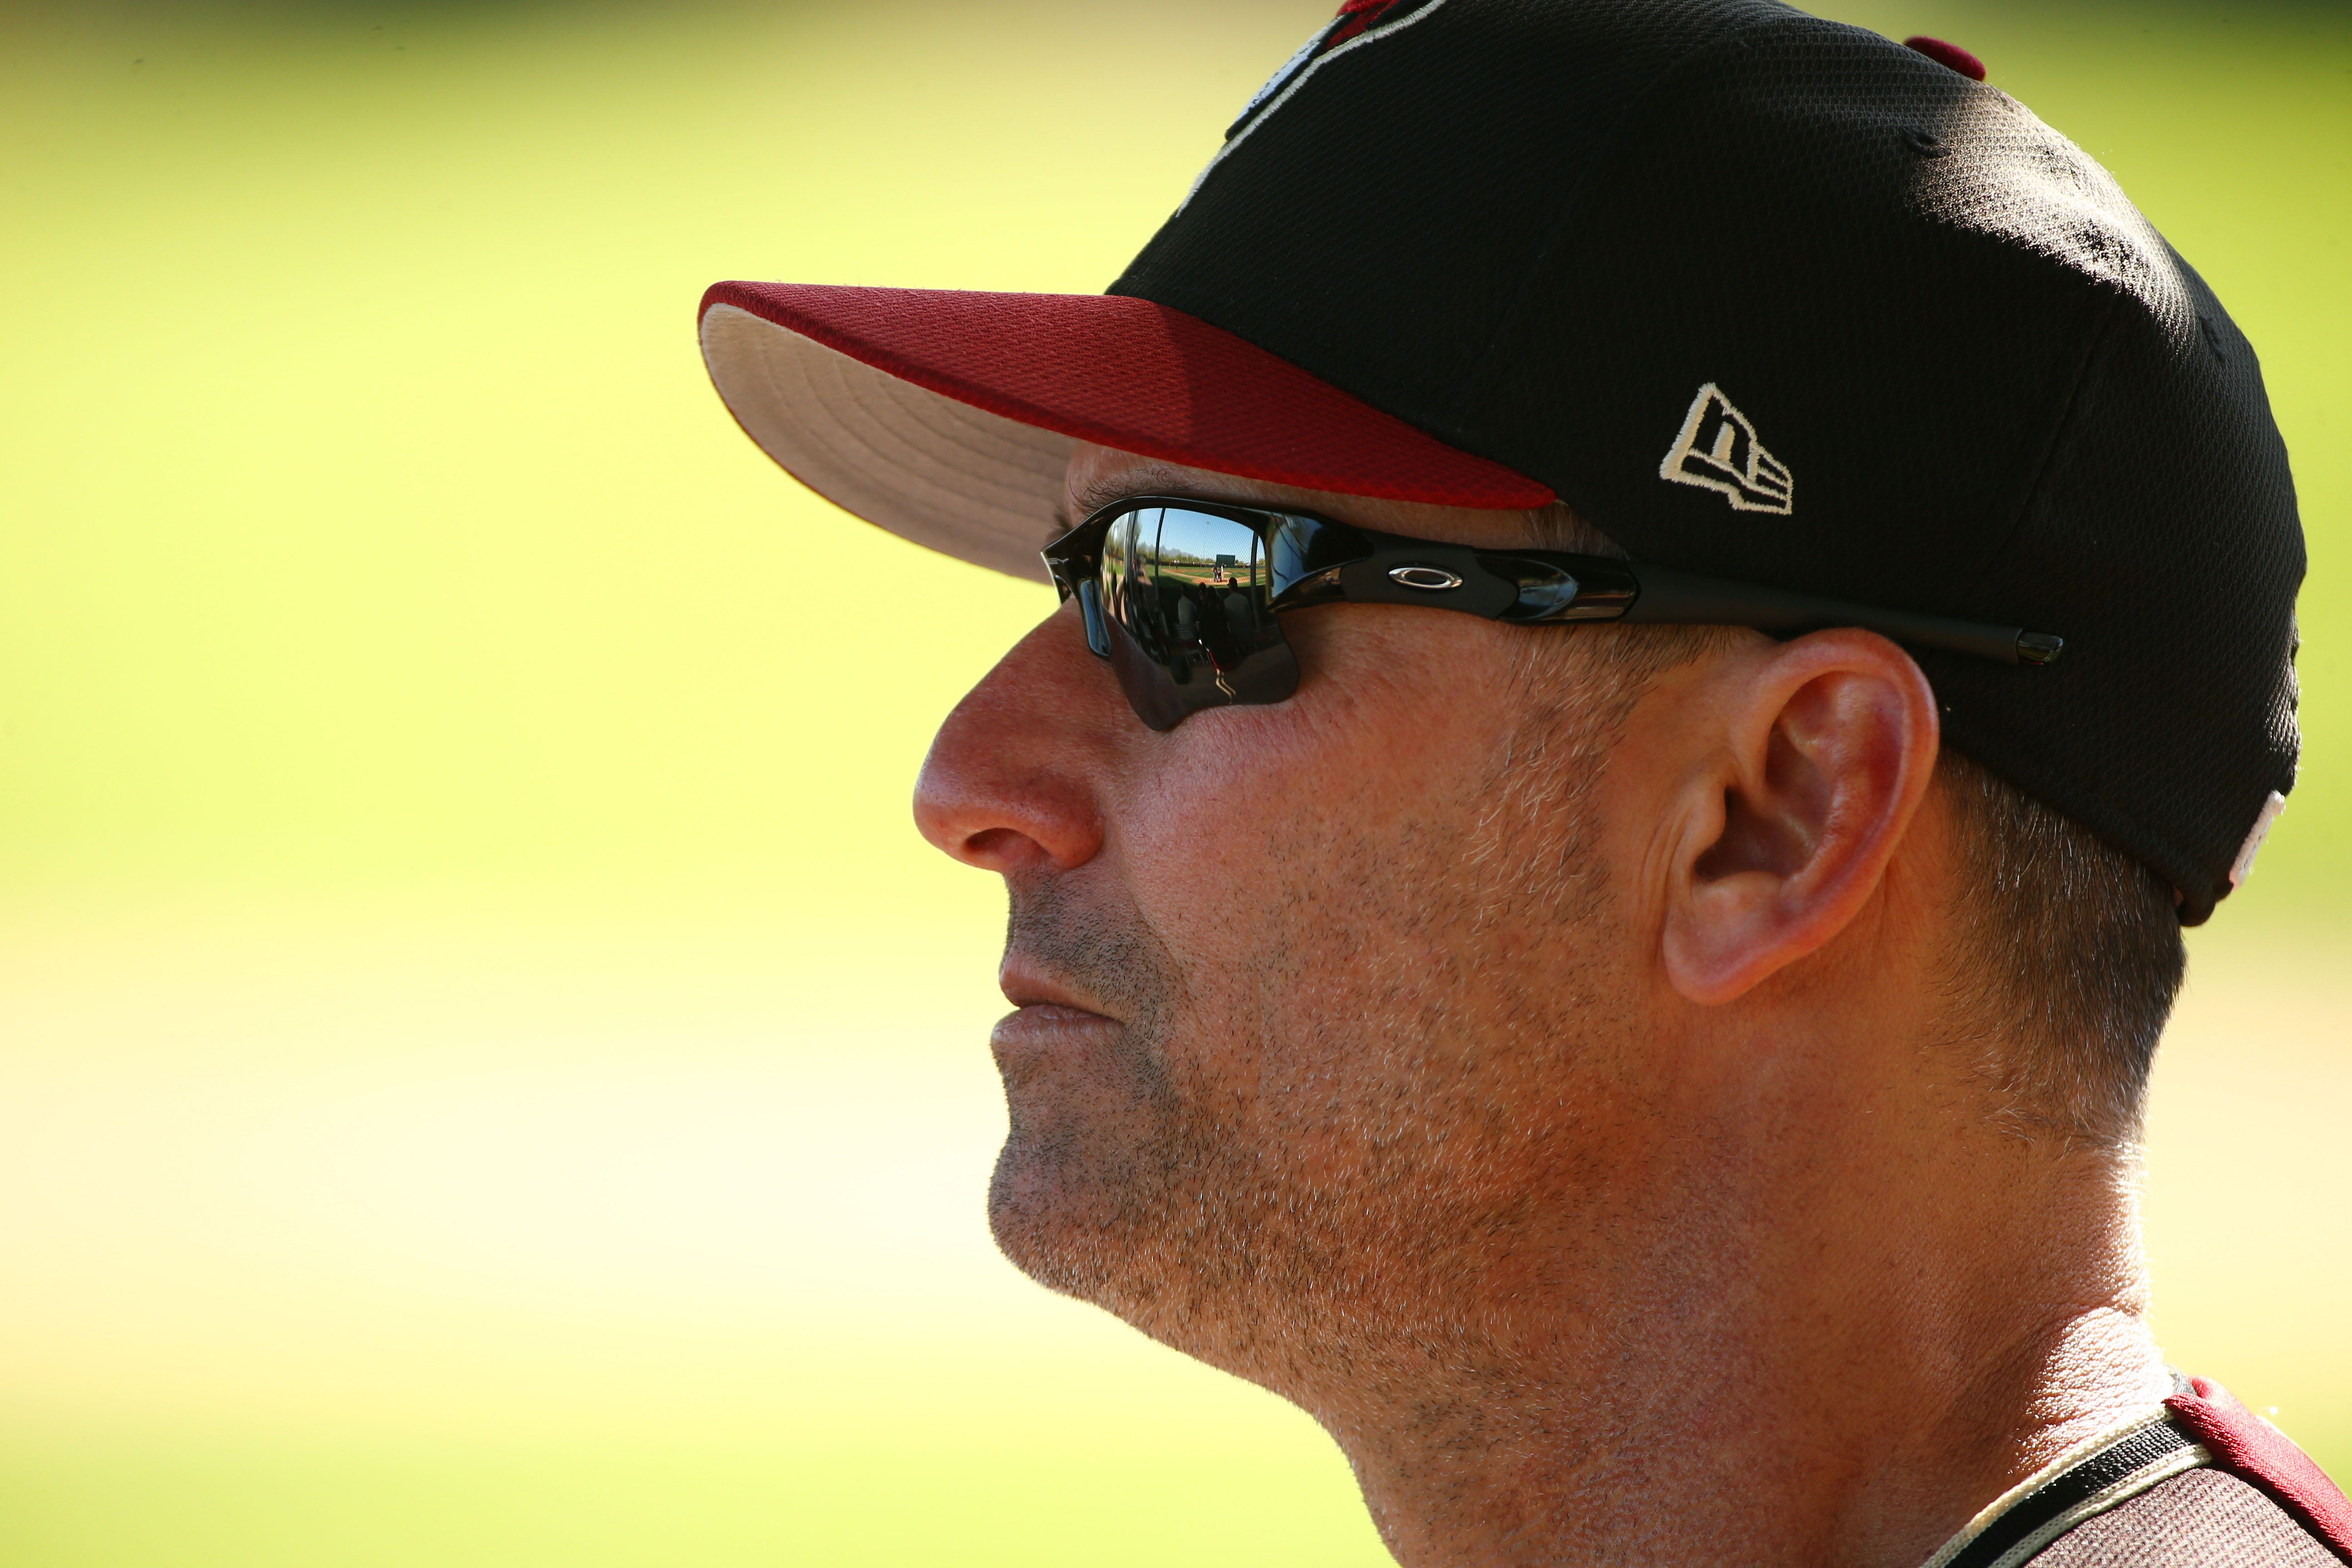 Anxiety, 30-second rule, hoops: a Q&A with Diamondbacks' Torey Lovullo